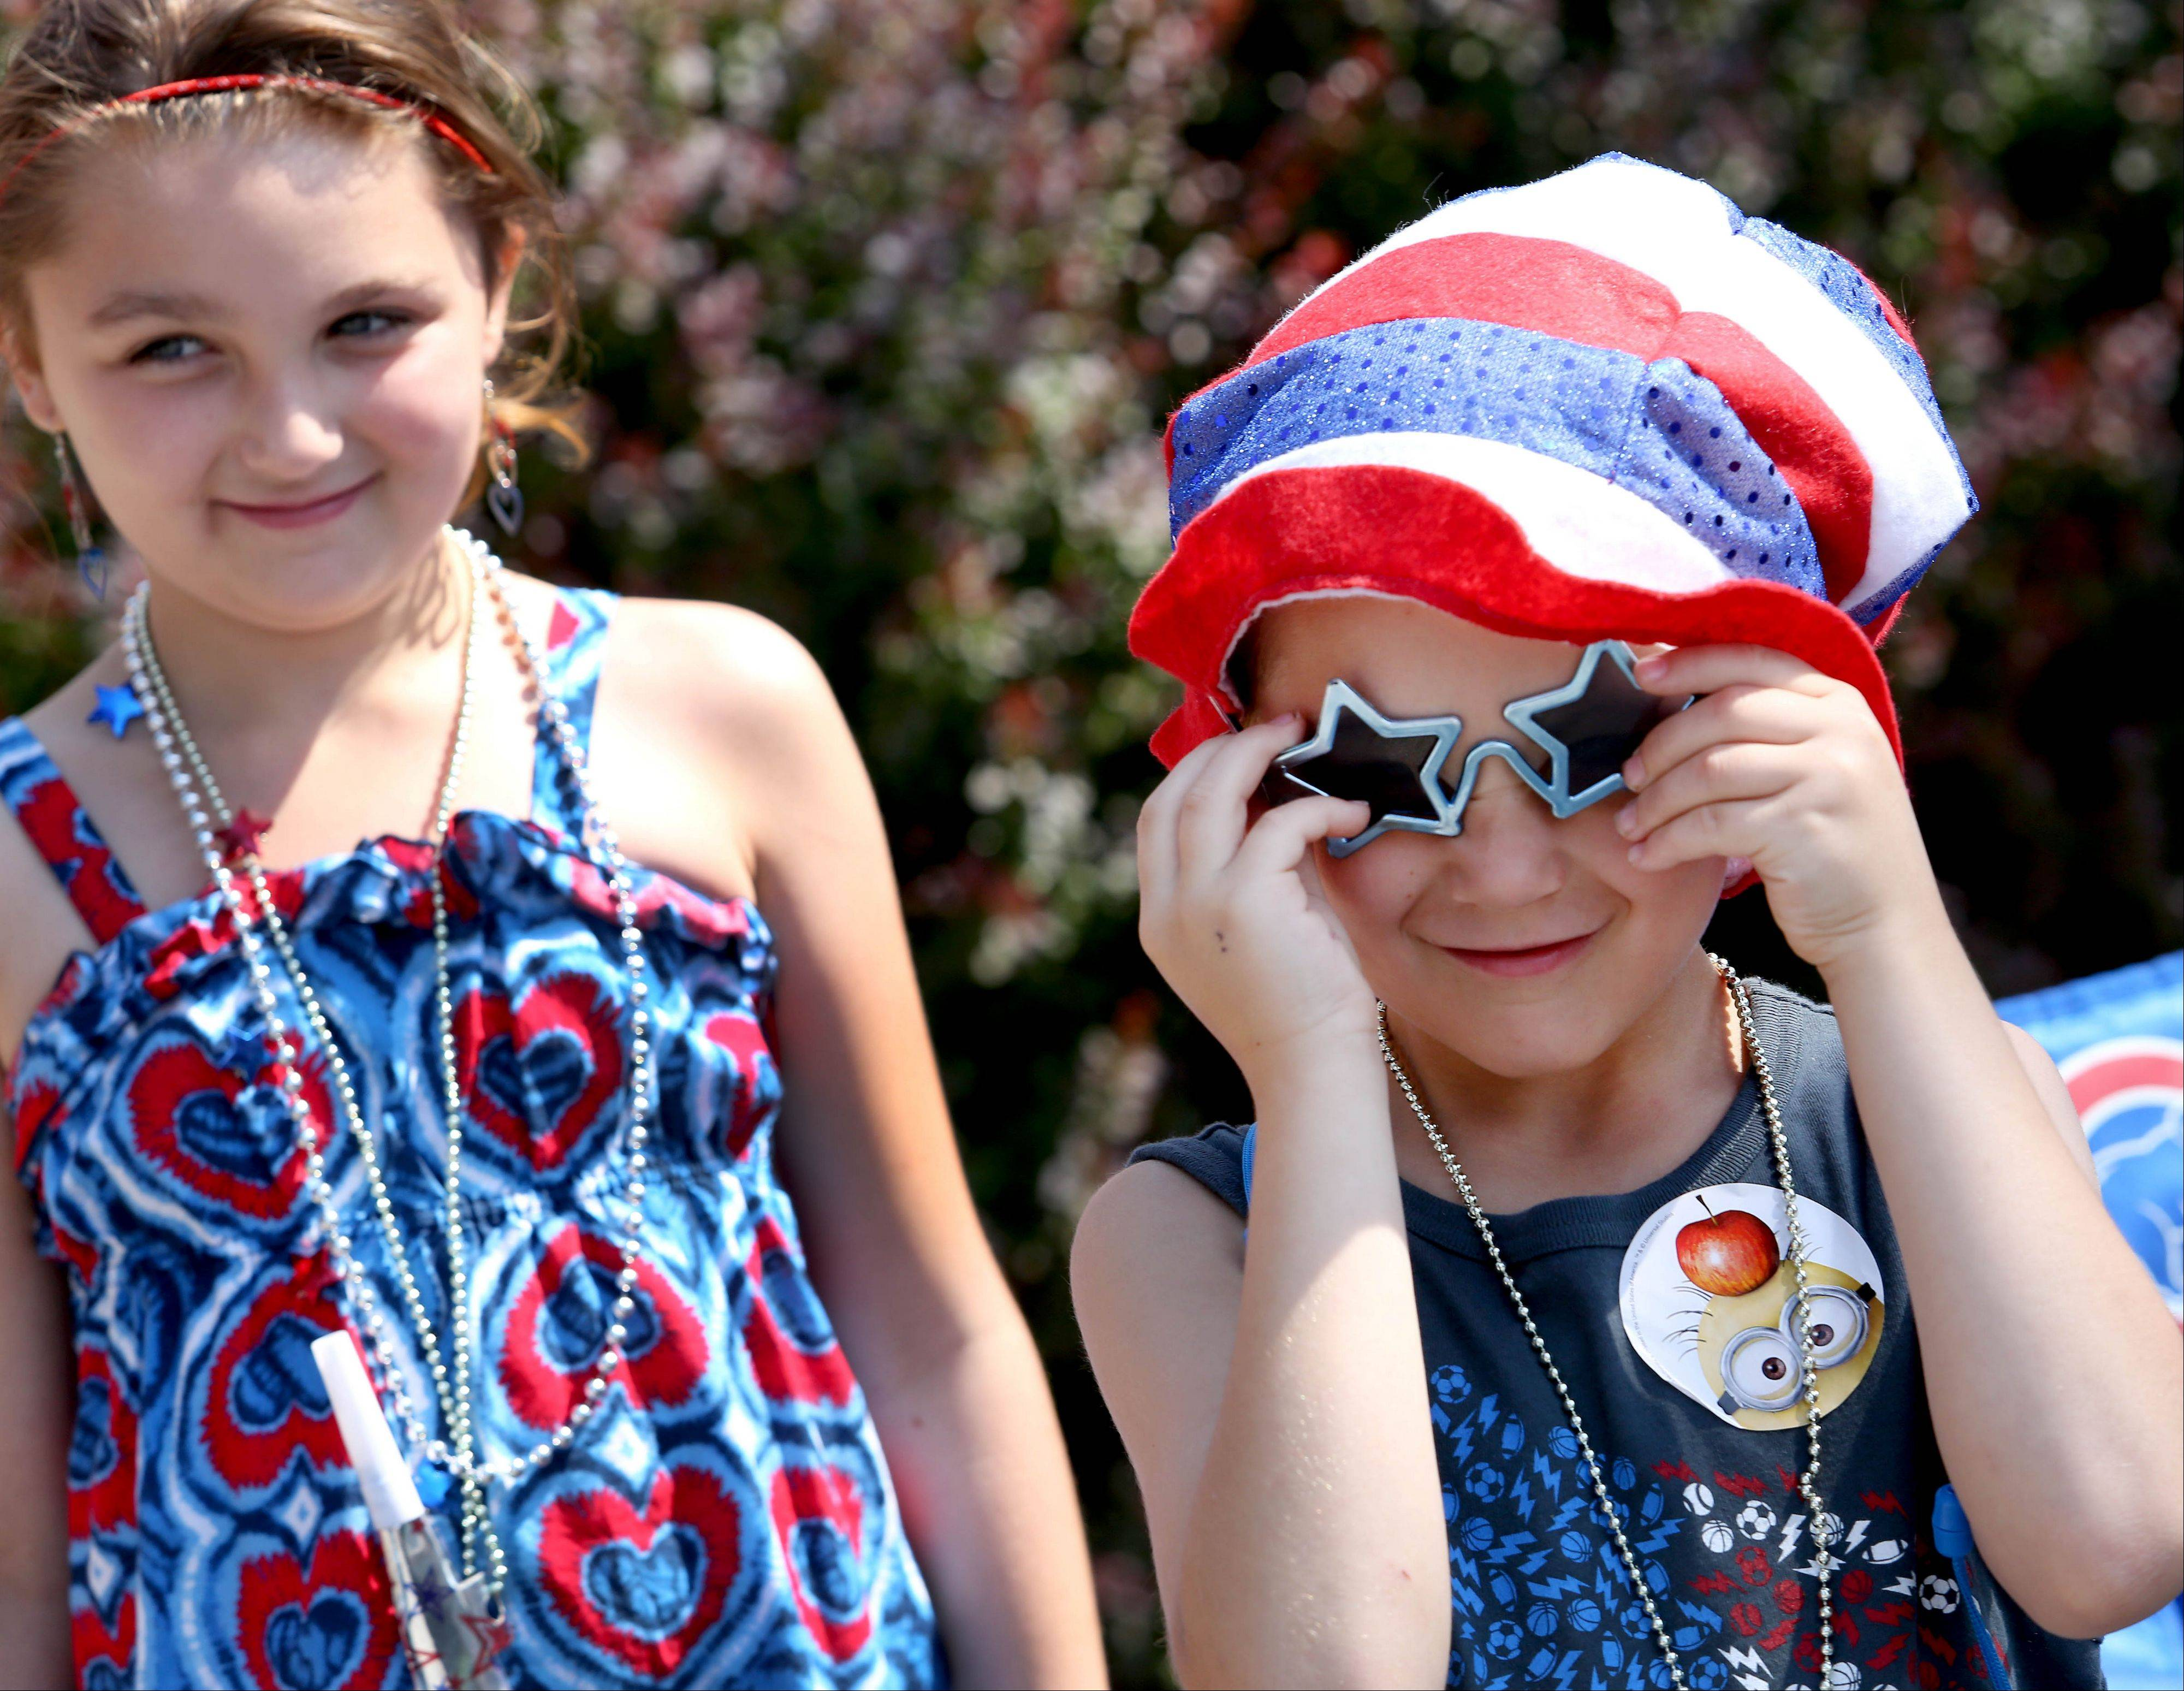 Margarette Spencer, 8, left and her brother Aidan, 6, of West Chicago, are decked out in red, white and blue as they wait for the 4th of July parade in Wheaton on Thursday.